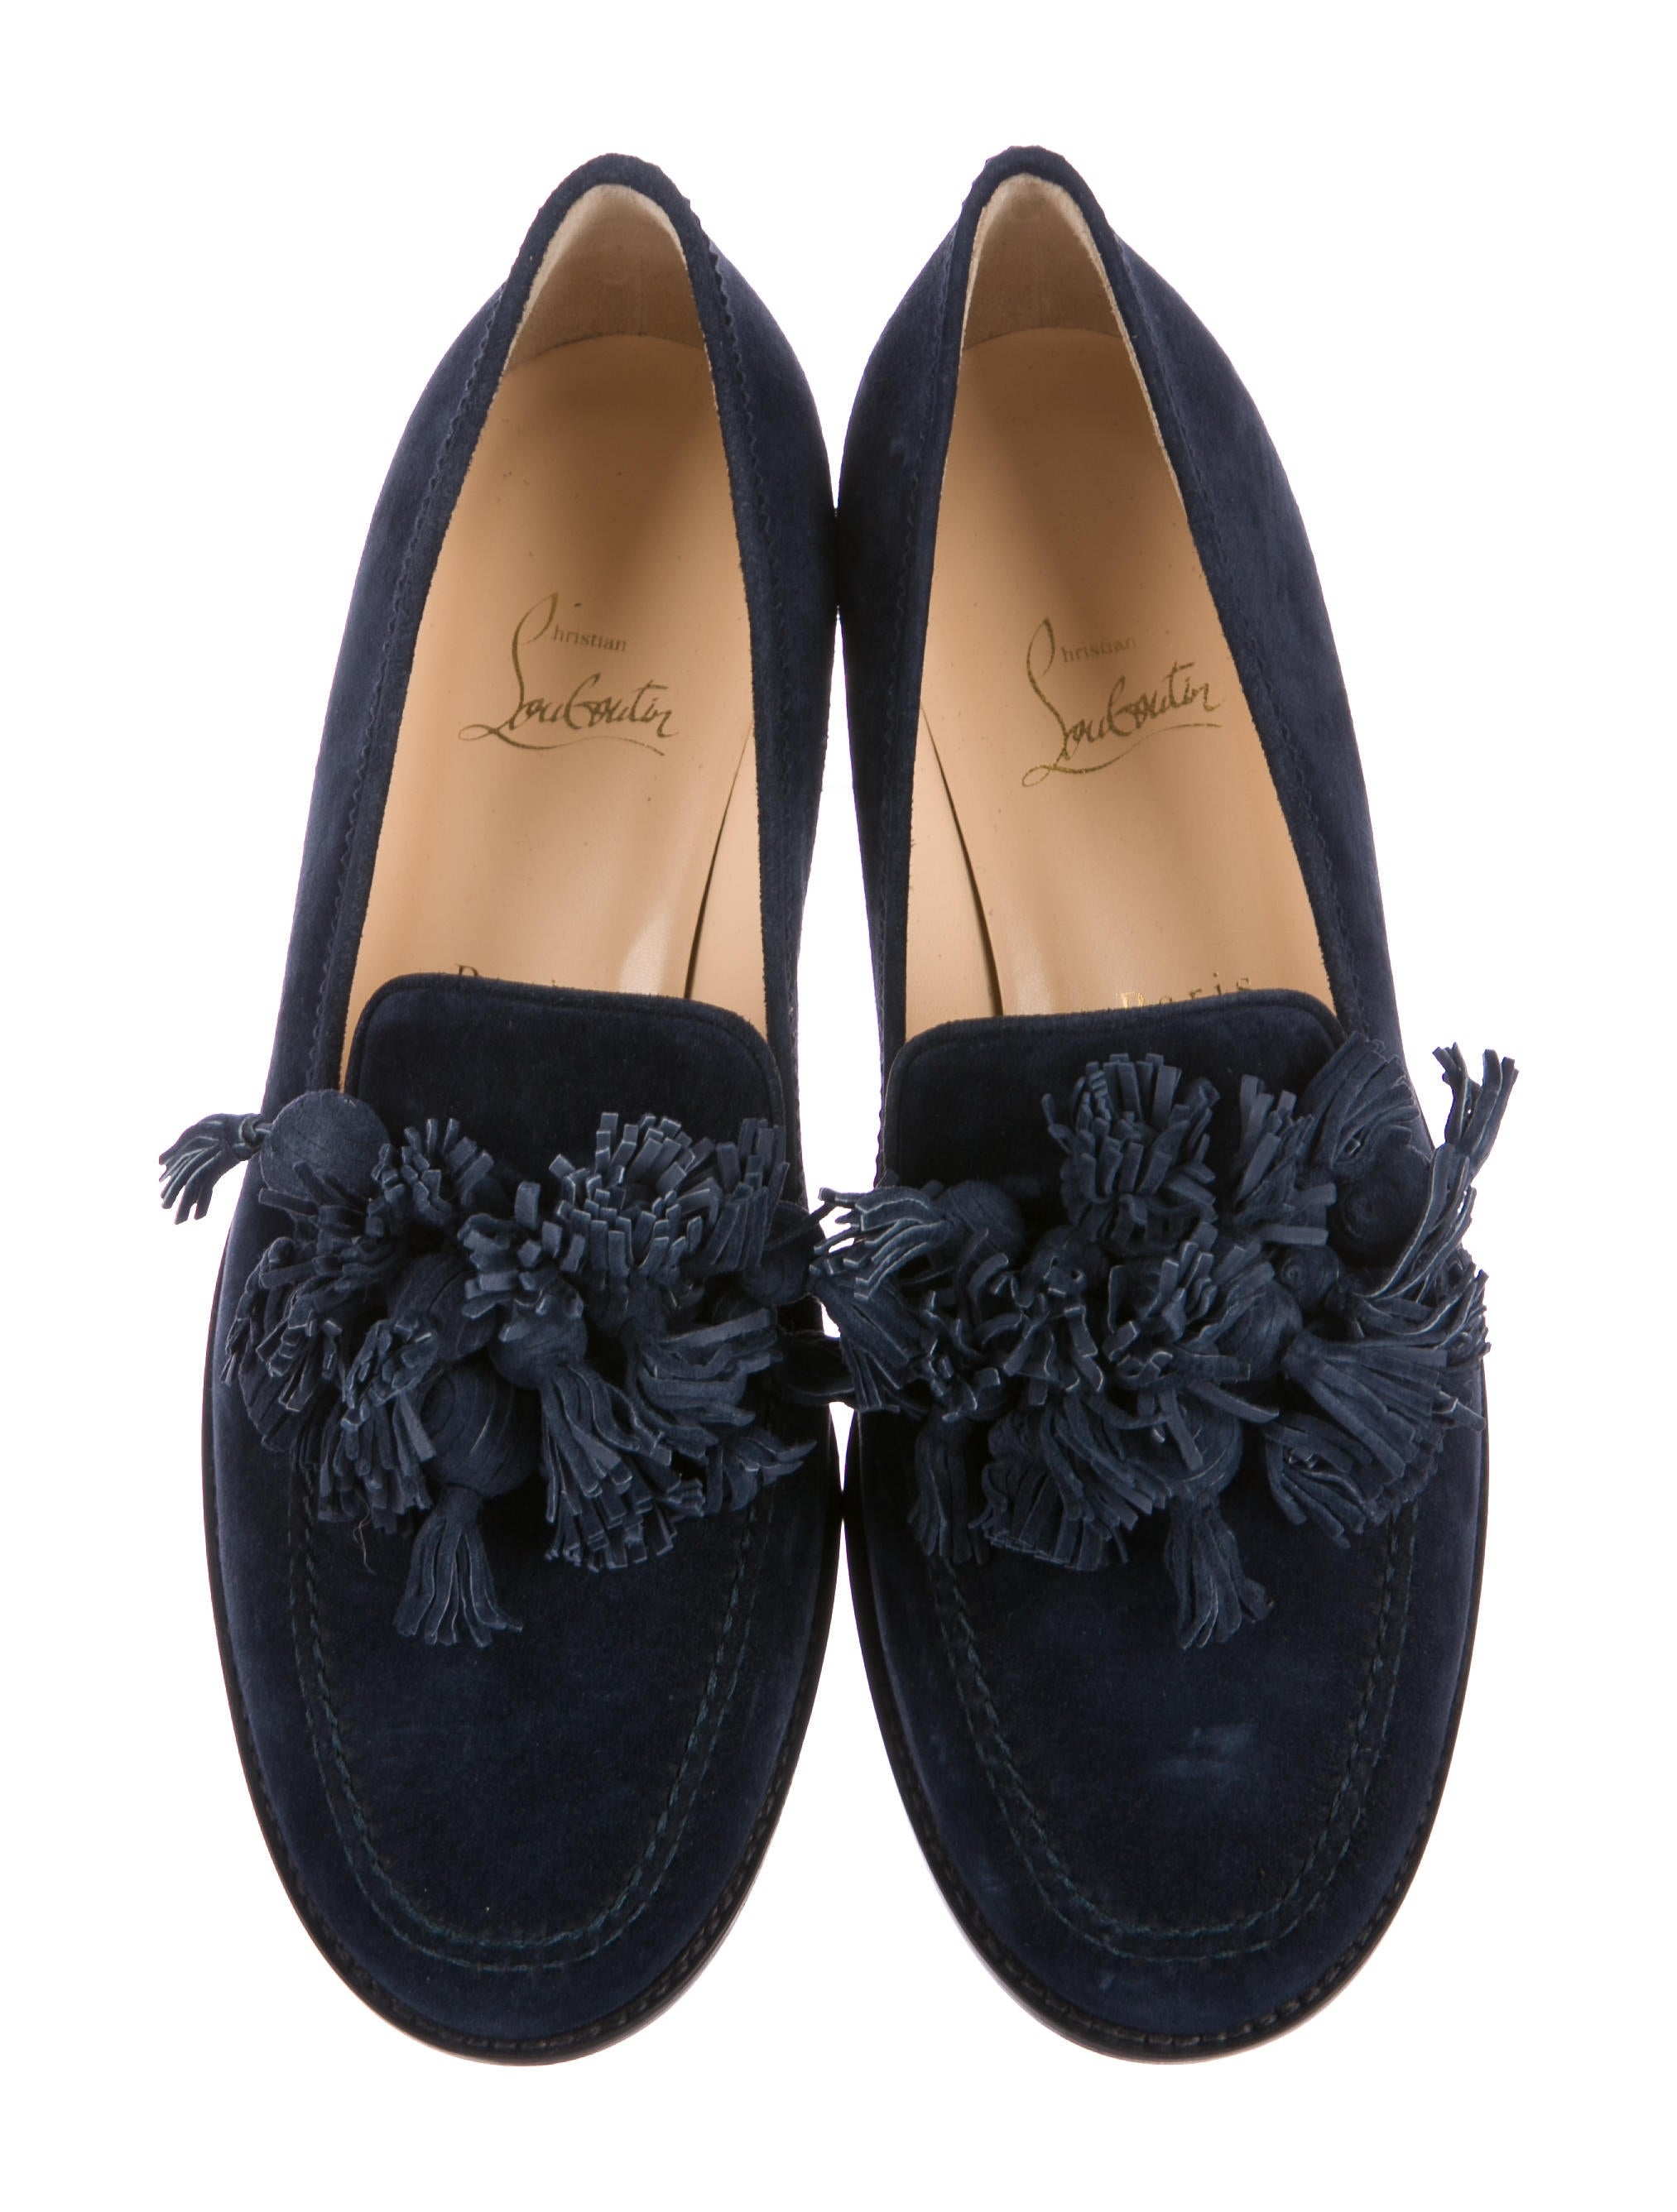 Christian Louboutin Japonaise Tassel-Embellished Loafers w/ Tags cheap sale new cheap sale great deals free shipping good selling how much cheap online QhWX6l